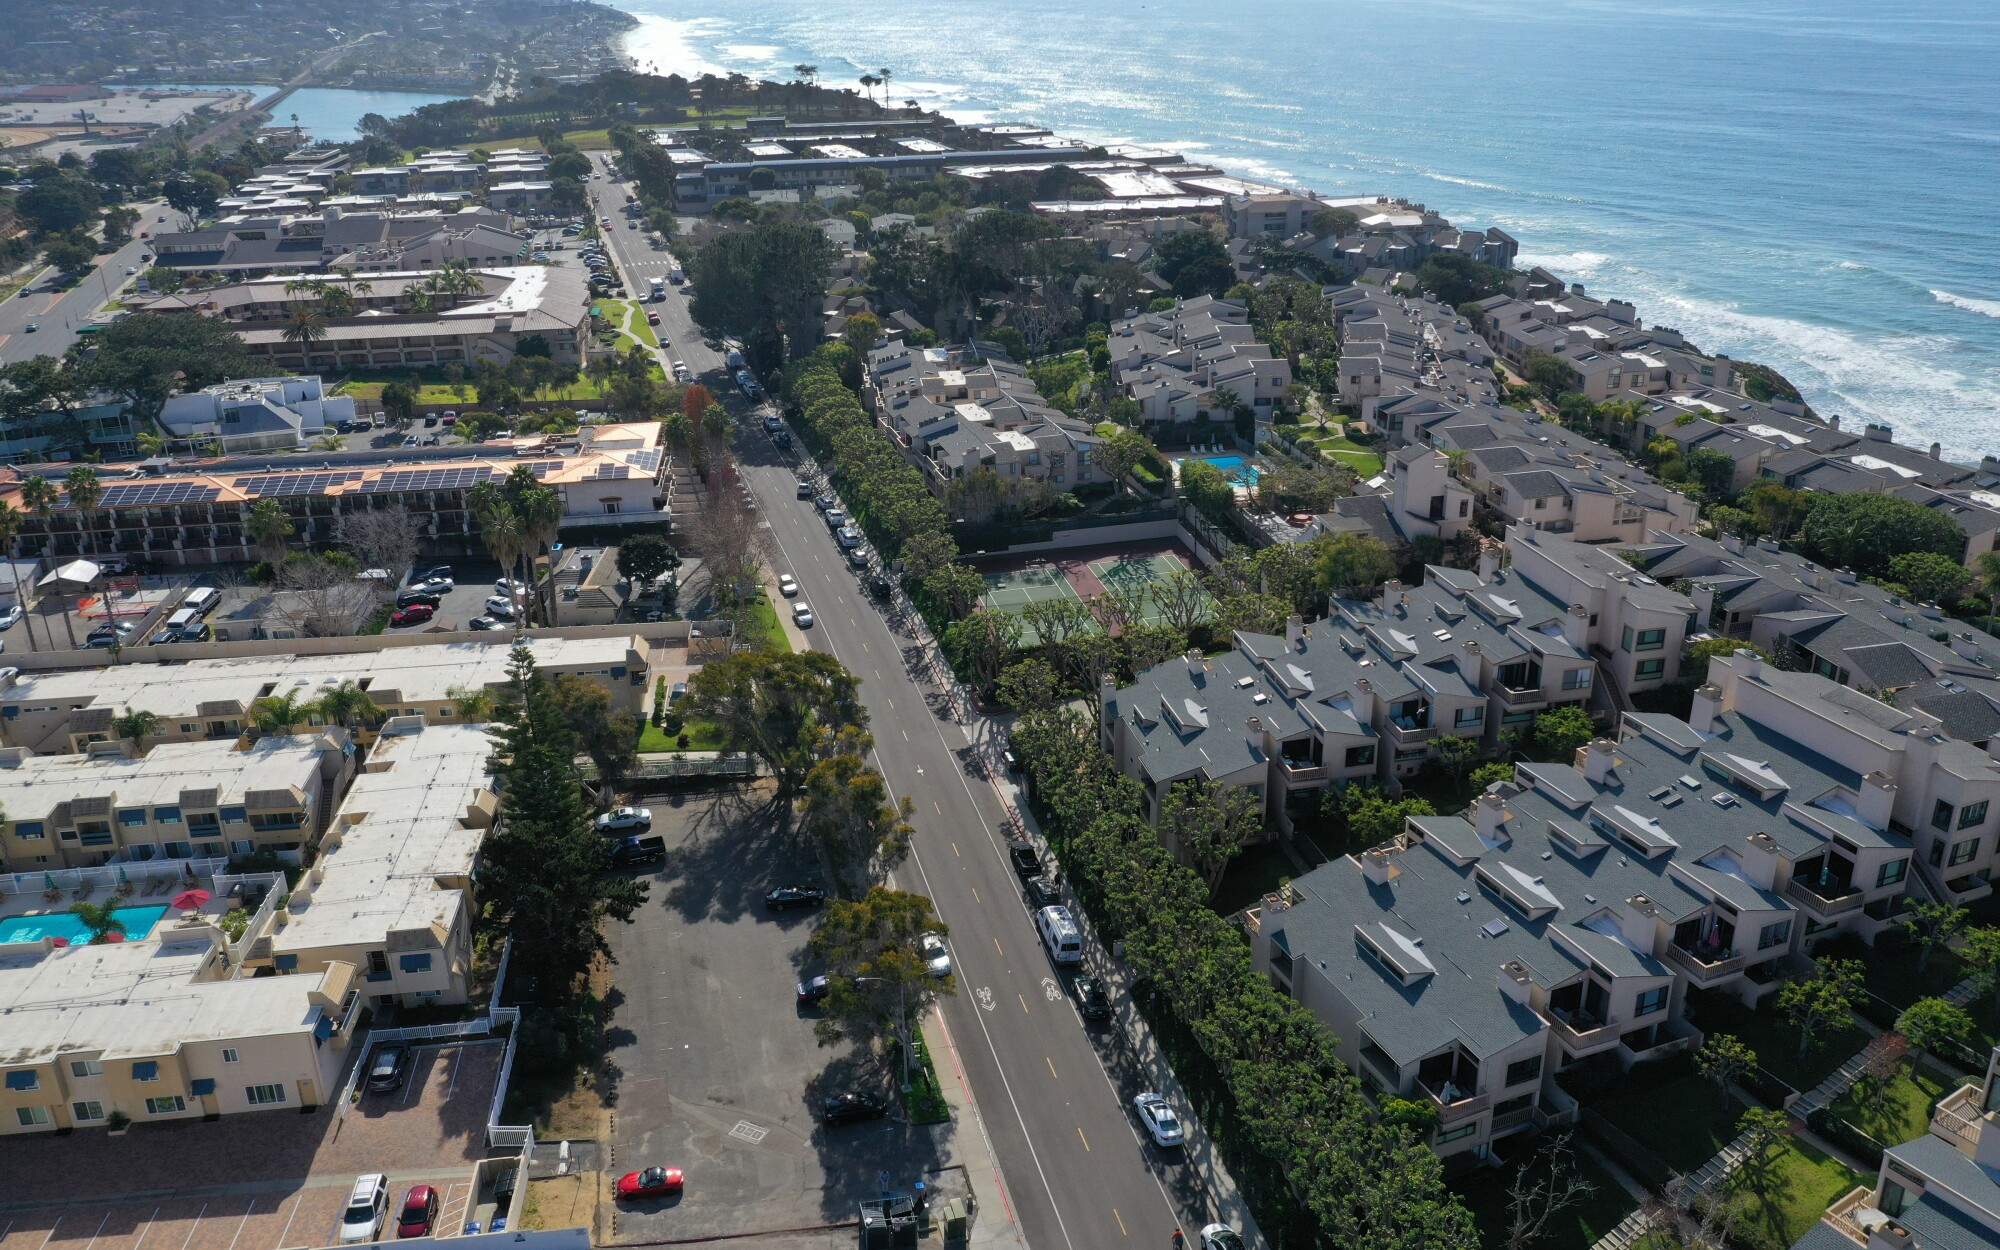 Coronavirus could make affordable housing in California cost more - Los Angeles Times